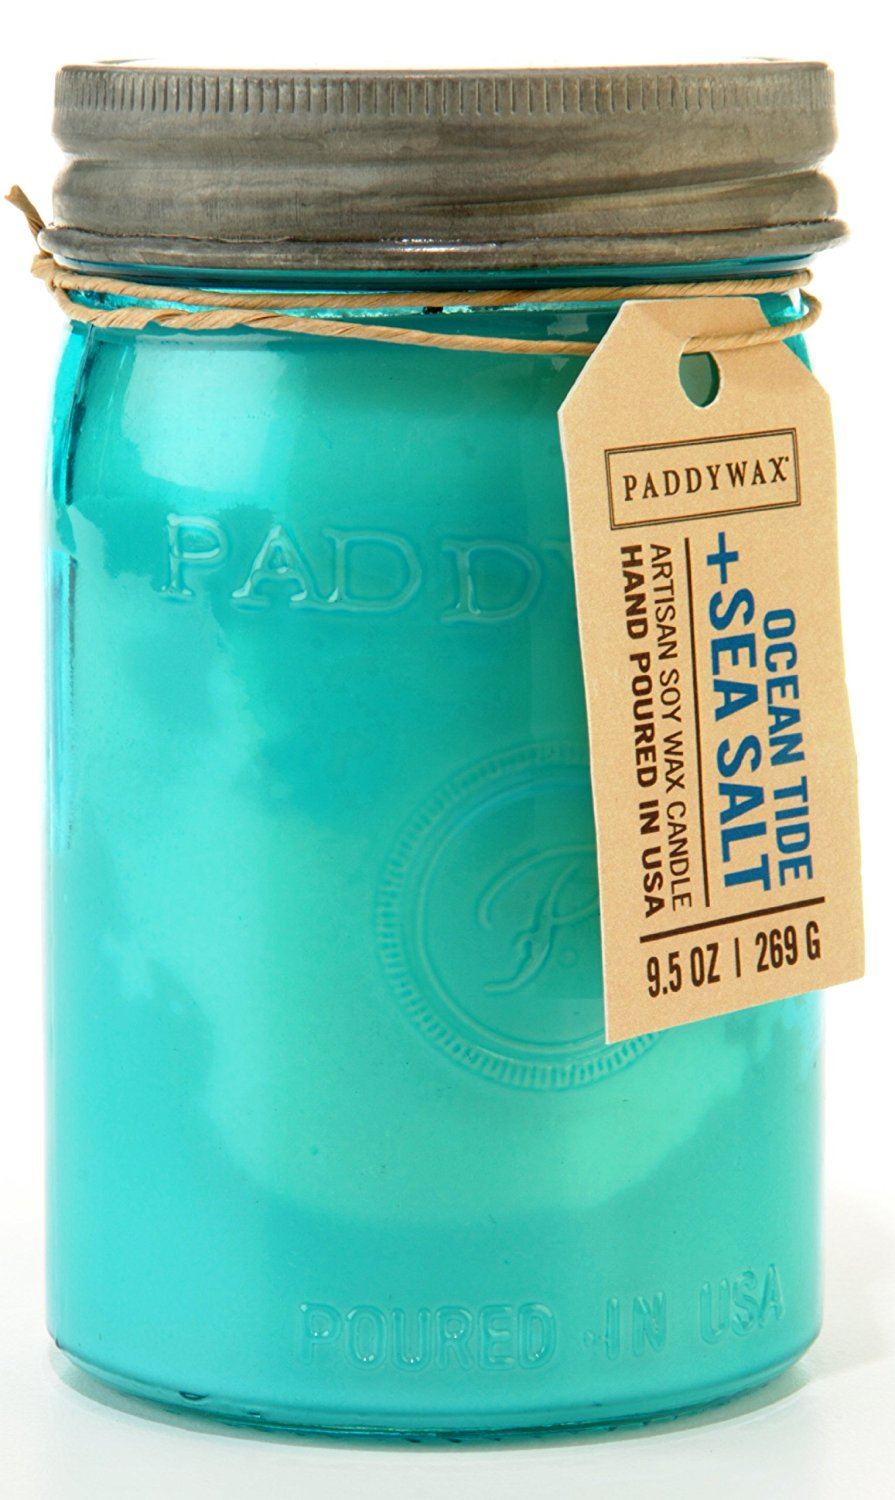 Paddywax Candles Relish Jar Collection Candle, 9.5-Ounce, Aqua Ocean Tide and Sea Salt